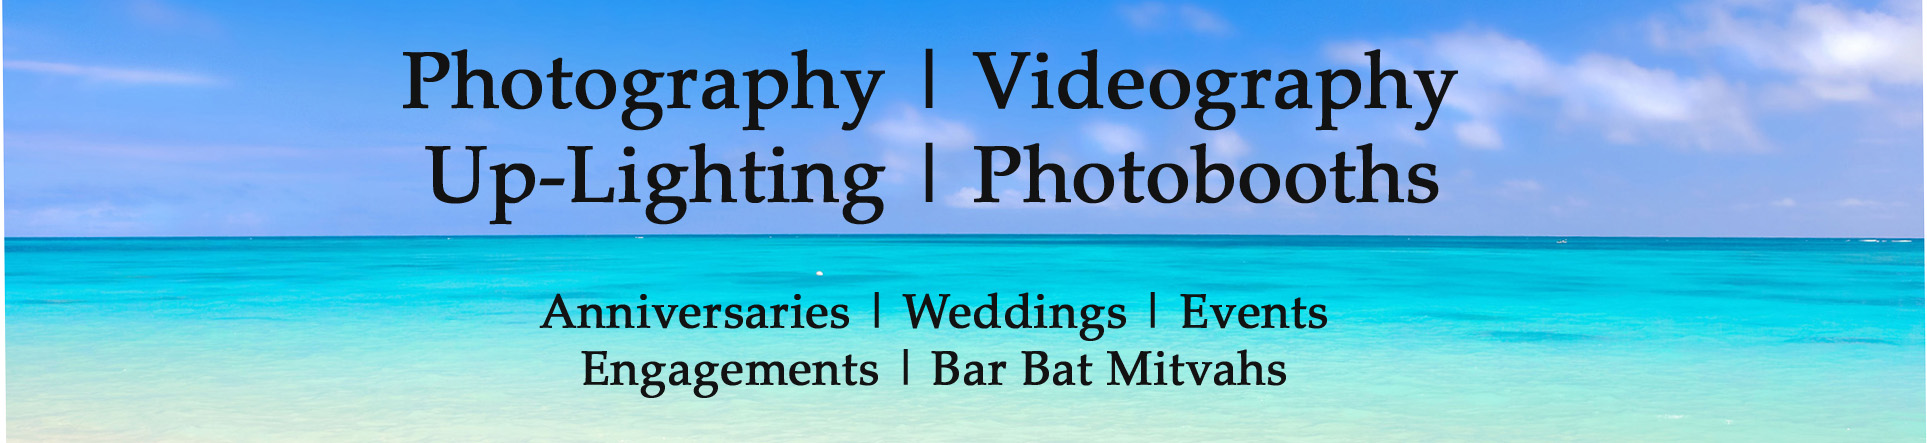 Wedding Videography Photographry Baltimore Maryland Banner